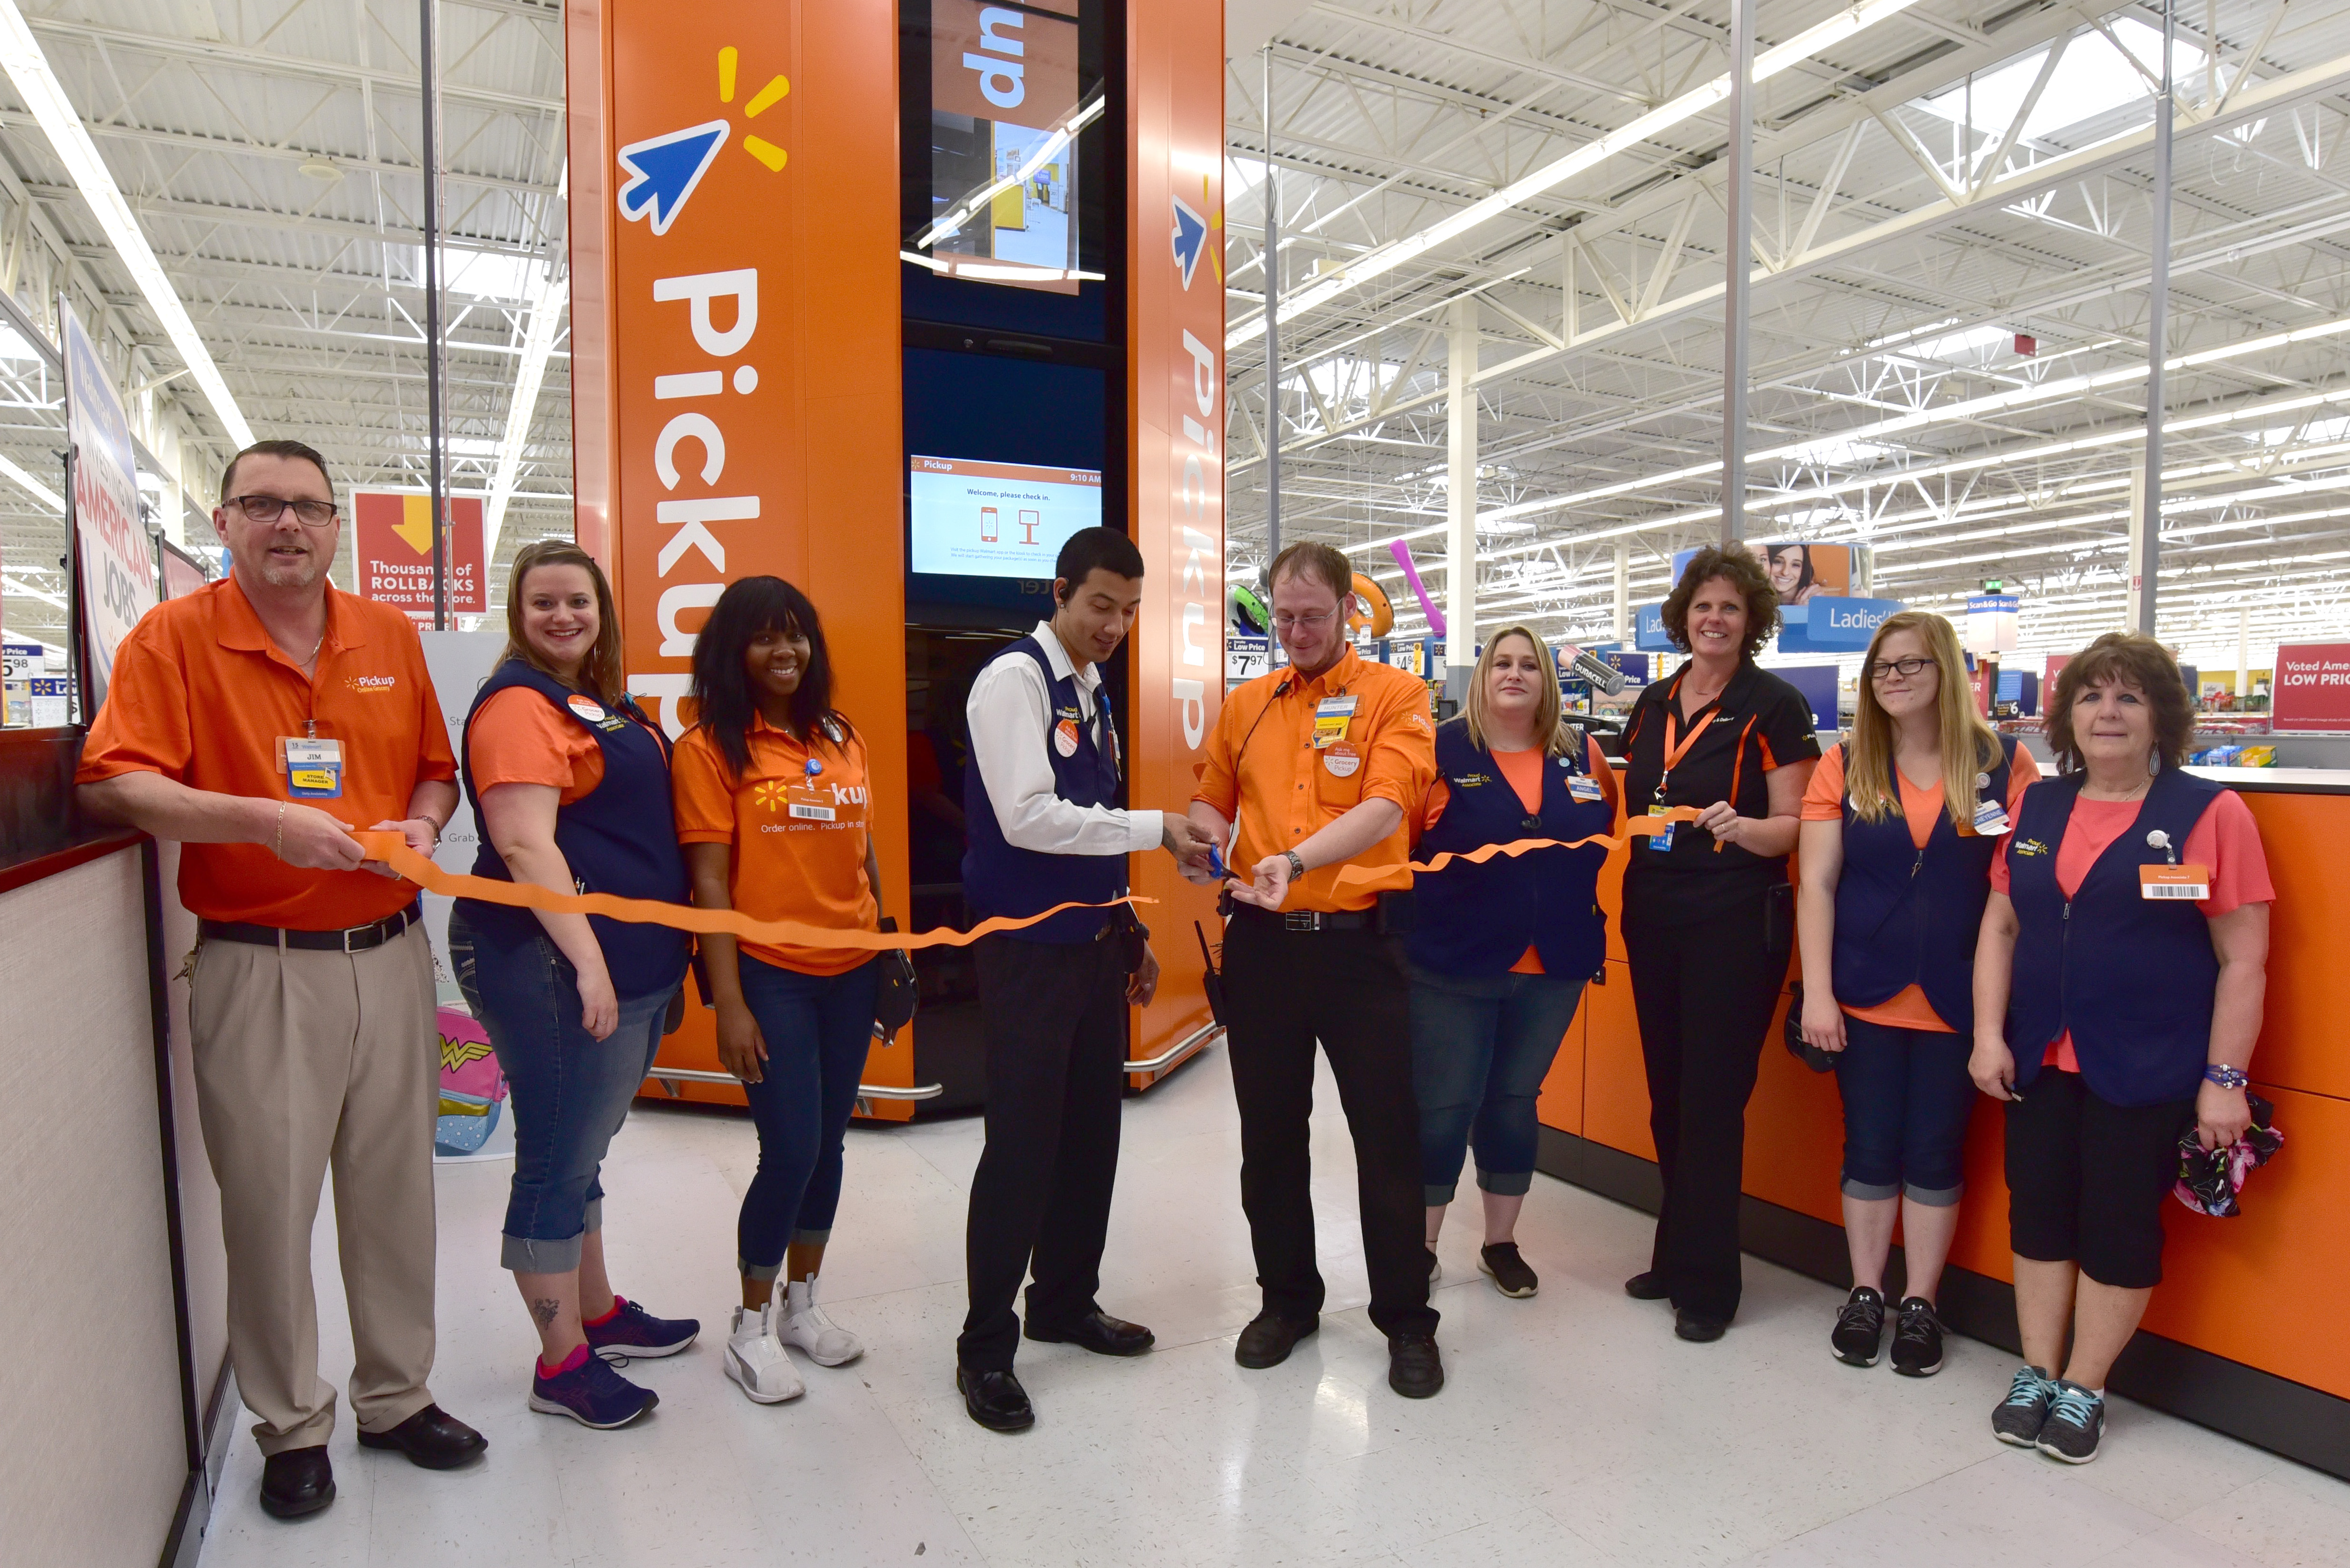 Walmart launches Online Grocery Pickup, Tower innovations at